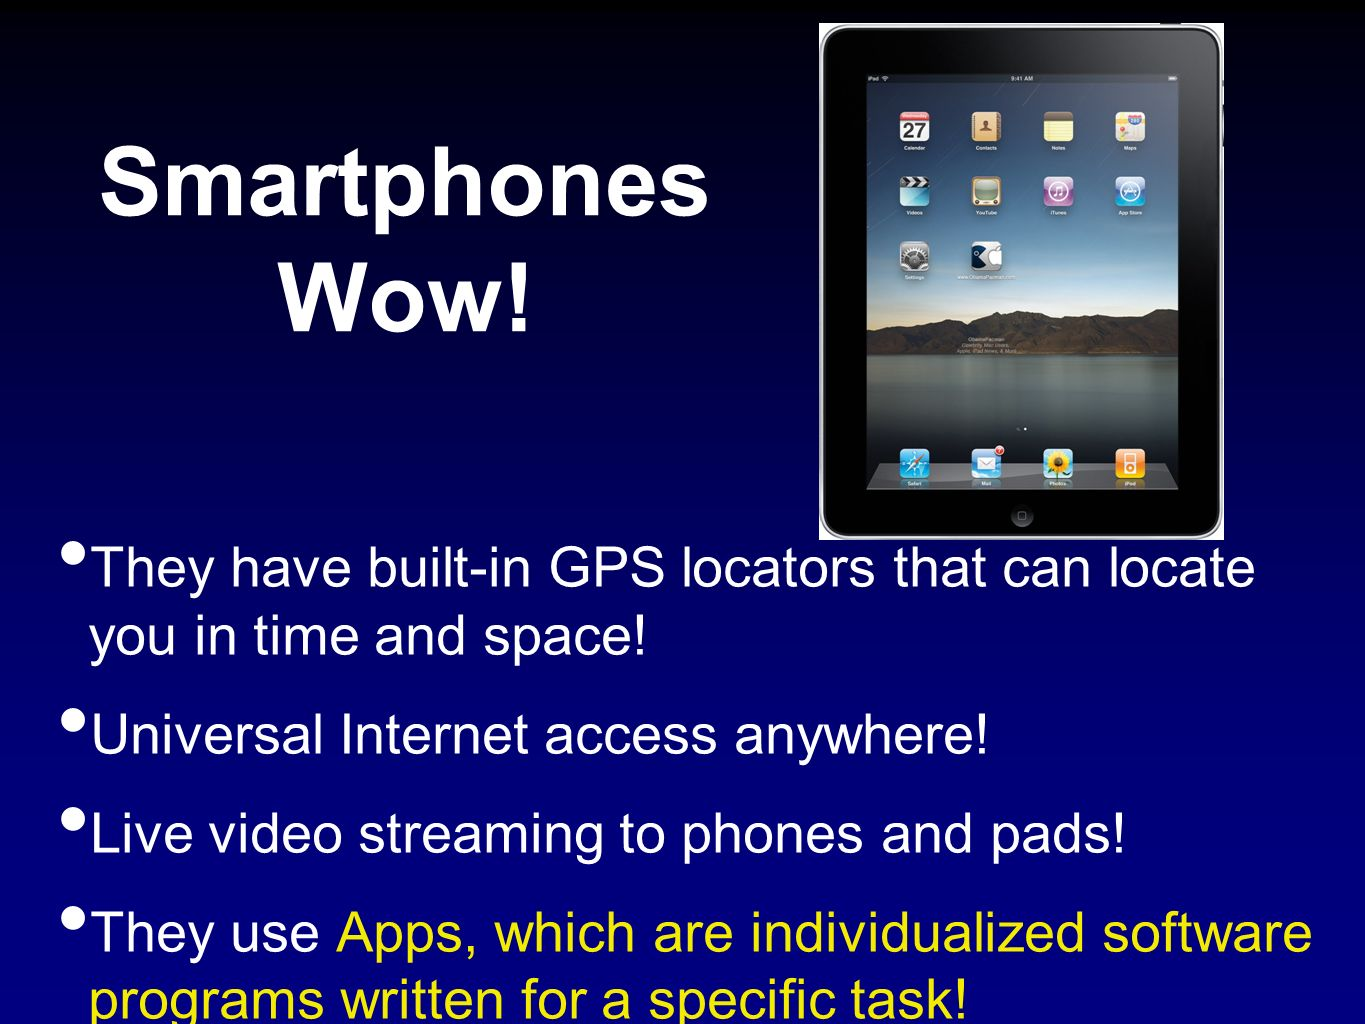 Smartphones Wow! They have built-in GPS locators that can locate you in time and space! Universal Internet access anywhere! Live video streaming to ph